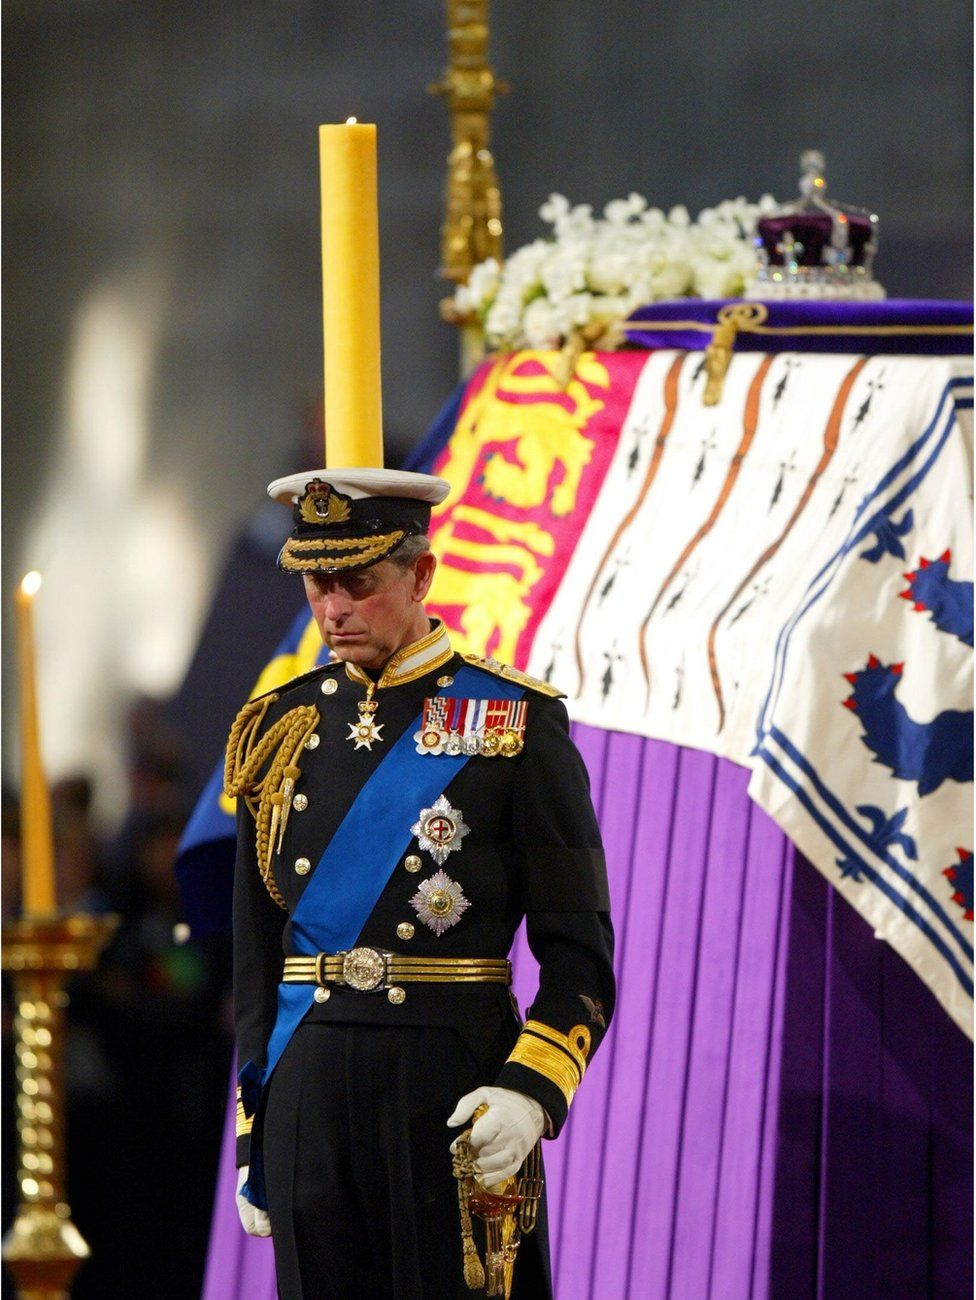 Prince of Wales standing vigil beside the Queen Mother's coffin in Westminster Hall in London